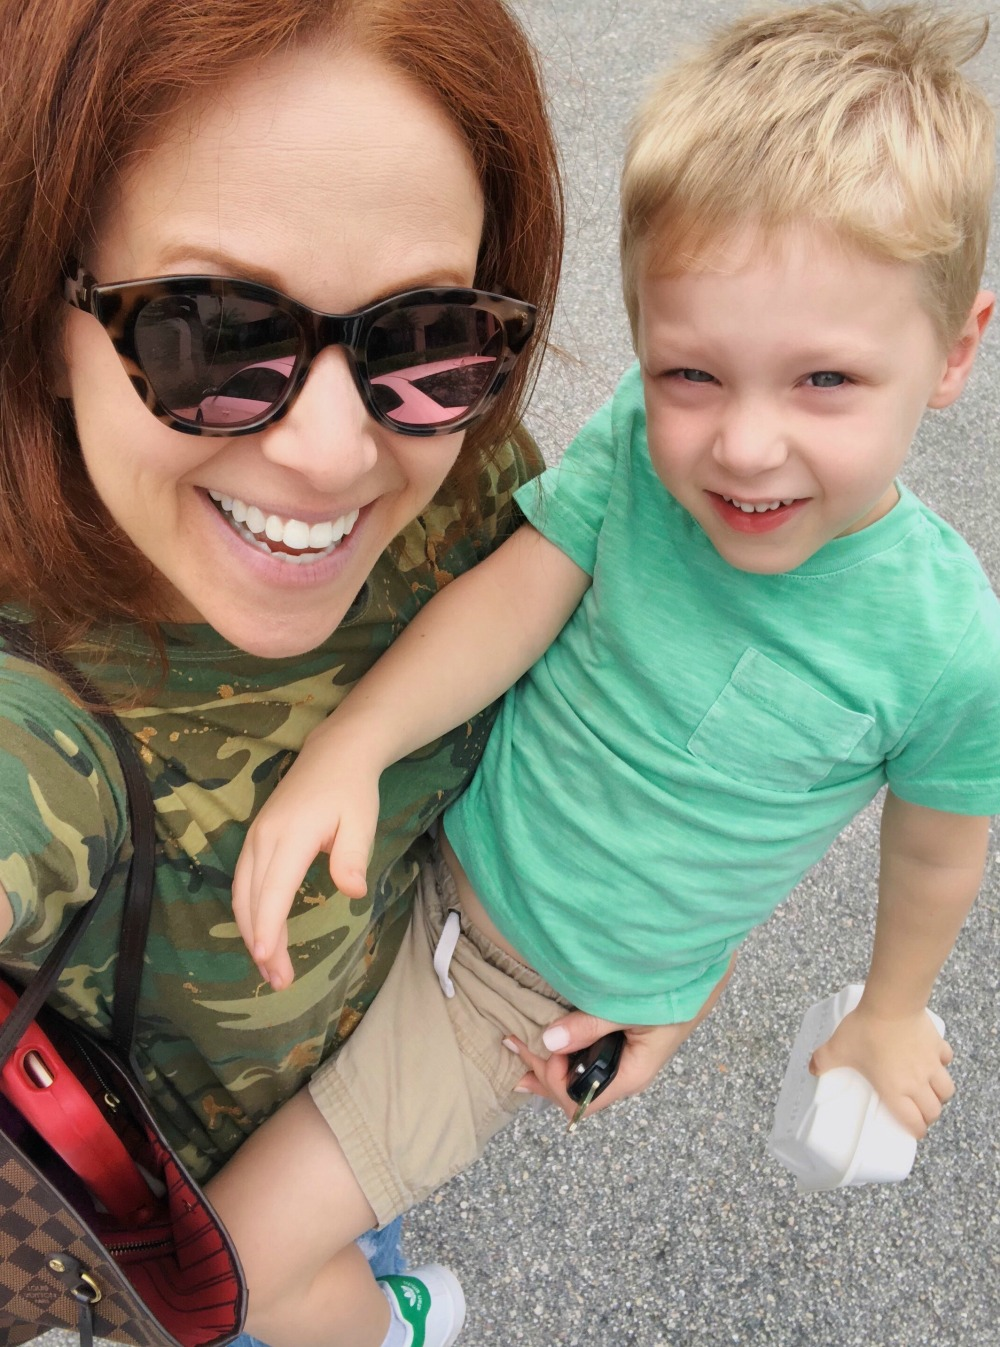 One family's adoption journey: all the things they don't tell you about adopting, from one mom who's been through the process  #adoption #family #parenting  - Our Adoption Story: What They Don't Tell You featured by popular Florida lifestyle blogger The Modern Savvy